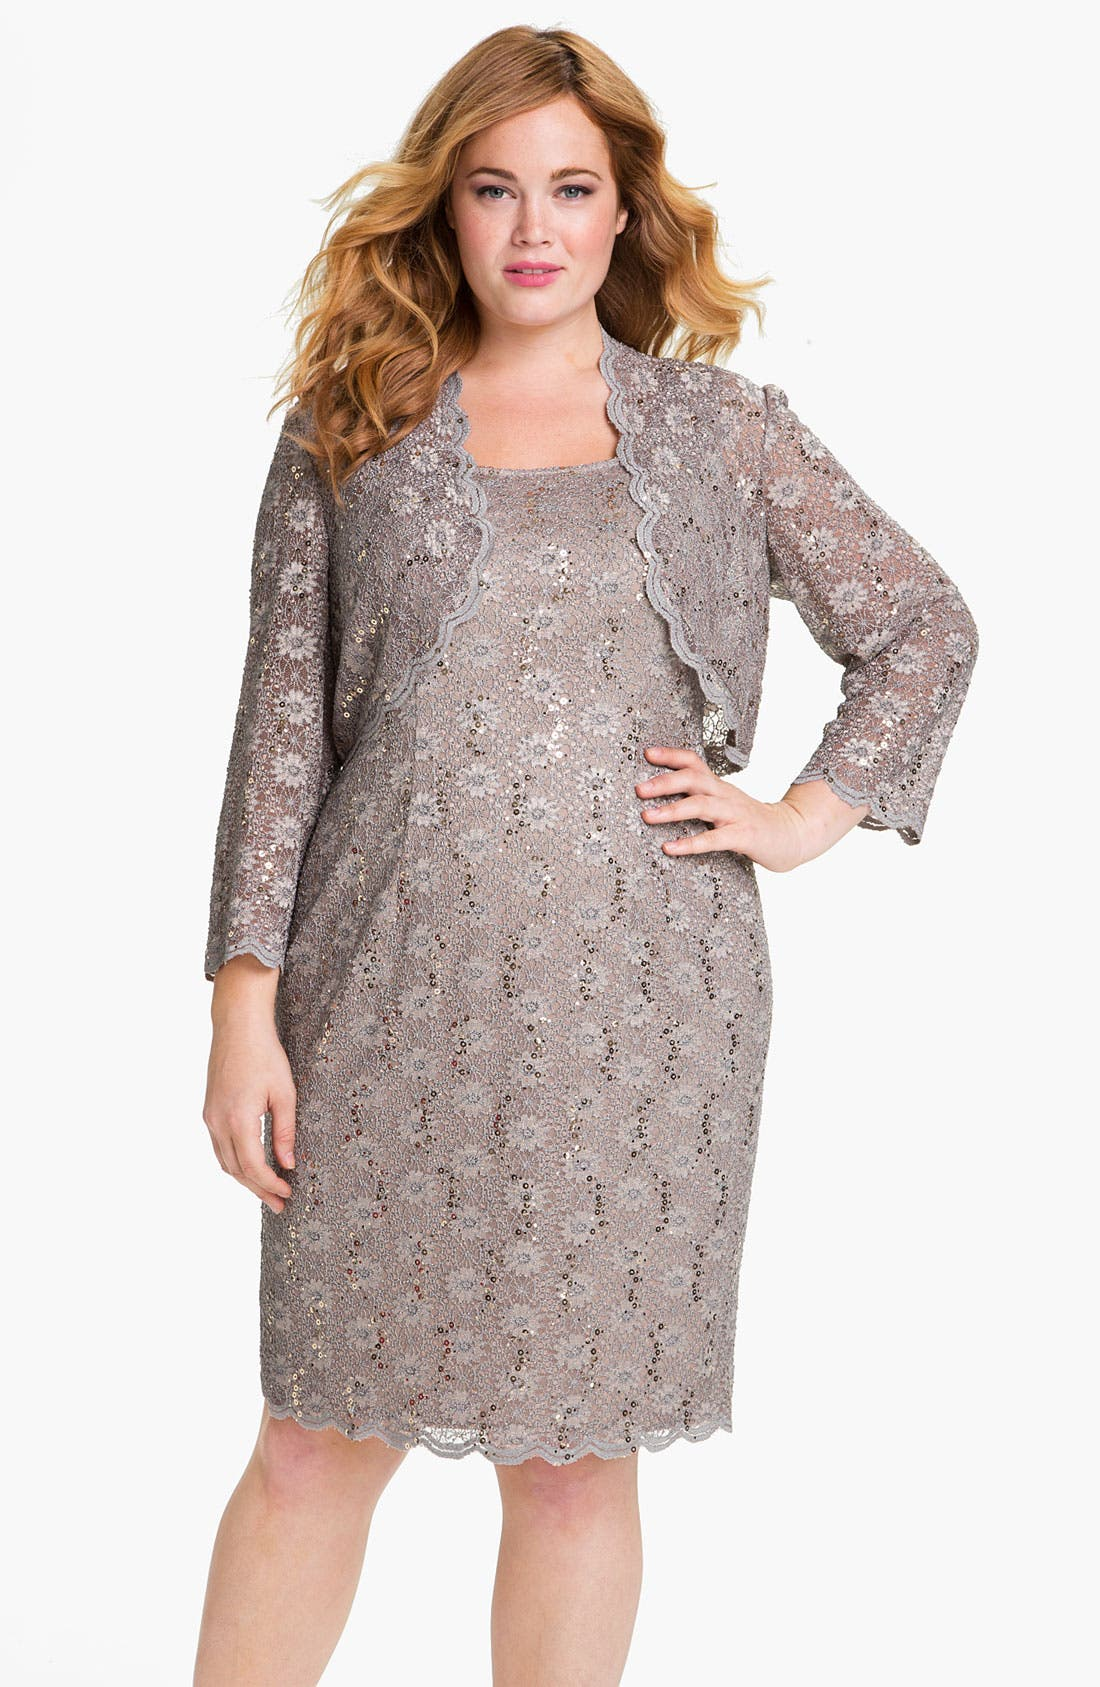 Main Image - Alex Evenings Sequined Lace Sleeveless Dress & Bolero (Plus Size)